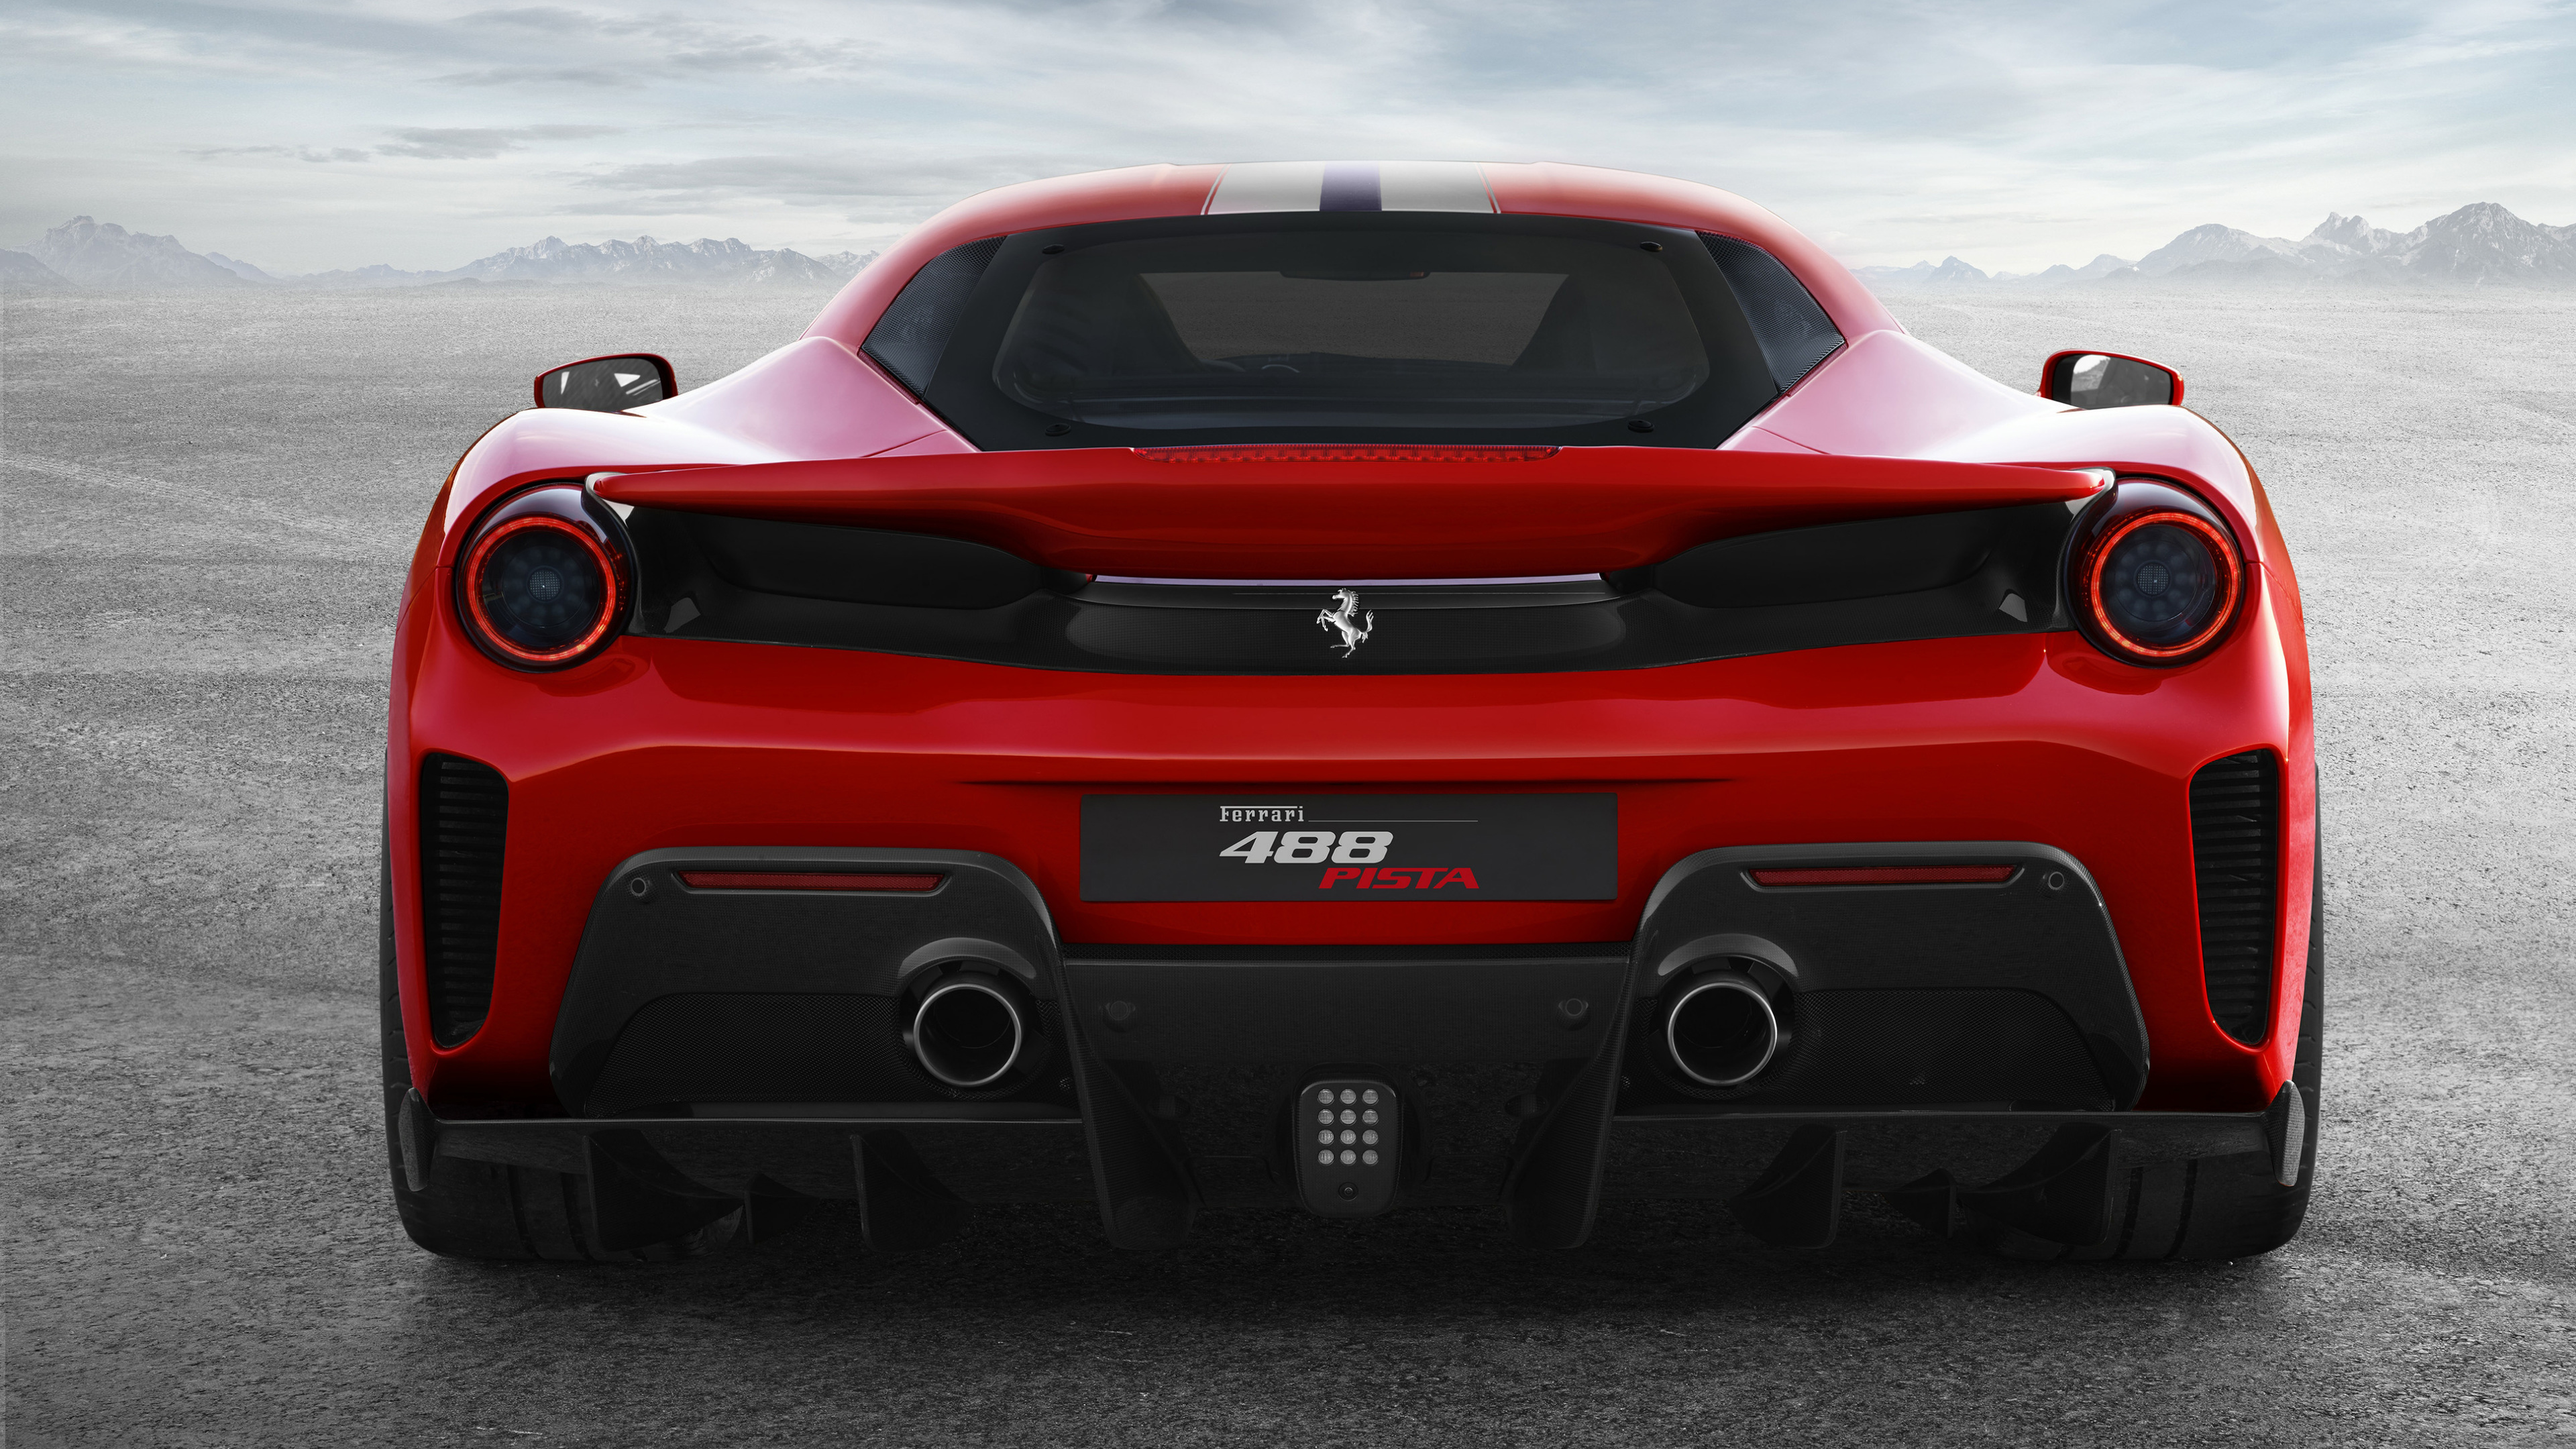 ferrari 488 pista rear view 4k 1539110121 - Ferrari 488 Pista Rear View 4k - hd-wallpapers, ferrari wallpapers, ferrari 488 wallpapers, ferrari 488 pista wallpapers, 4k-wallpapers, 2018 cars wallpapers